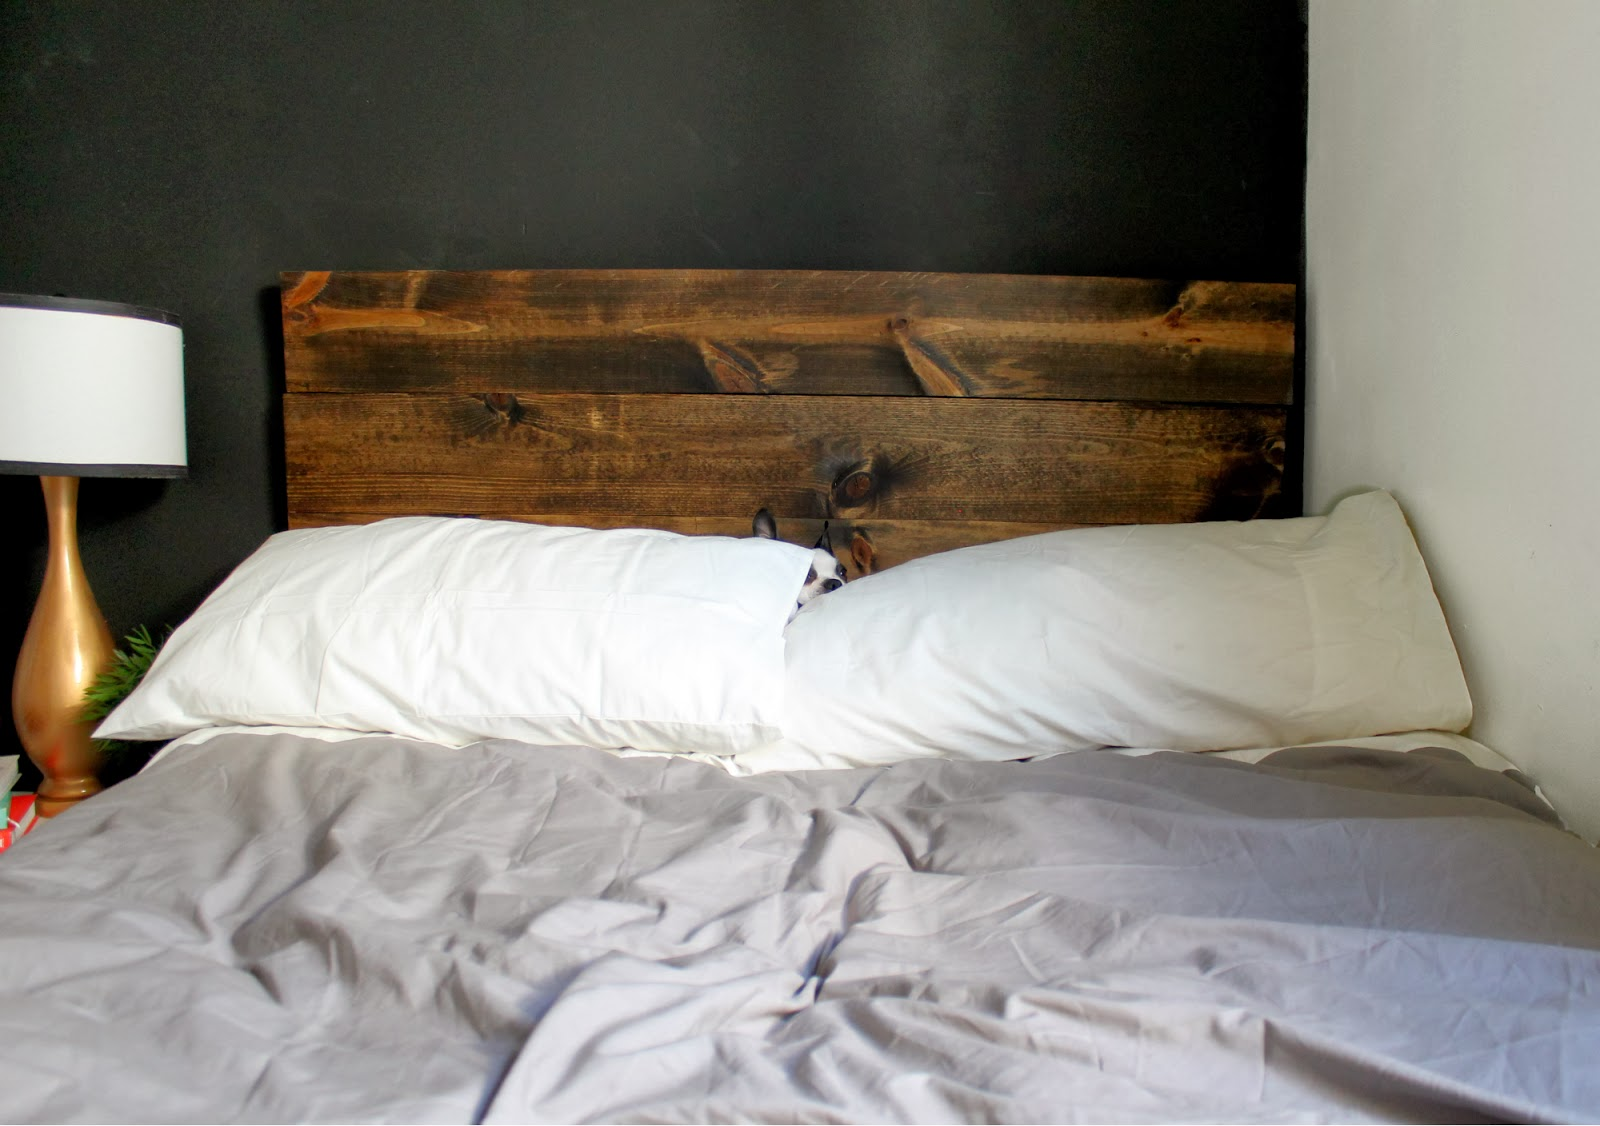 20 Diy Headboard Projects The Craftiest Couple